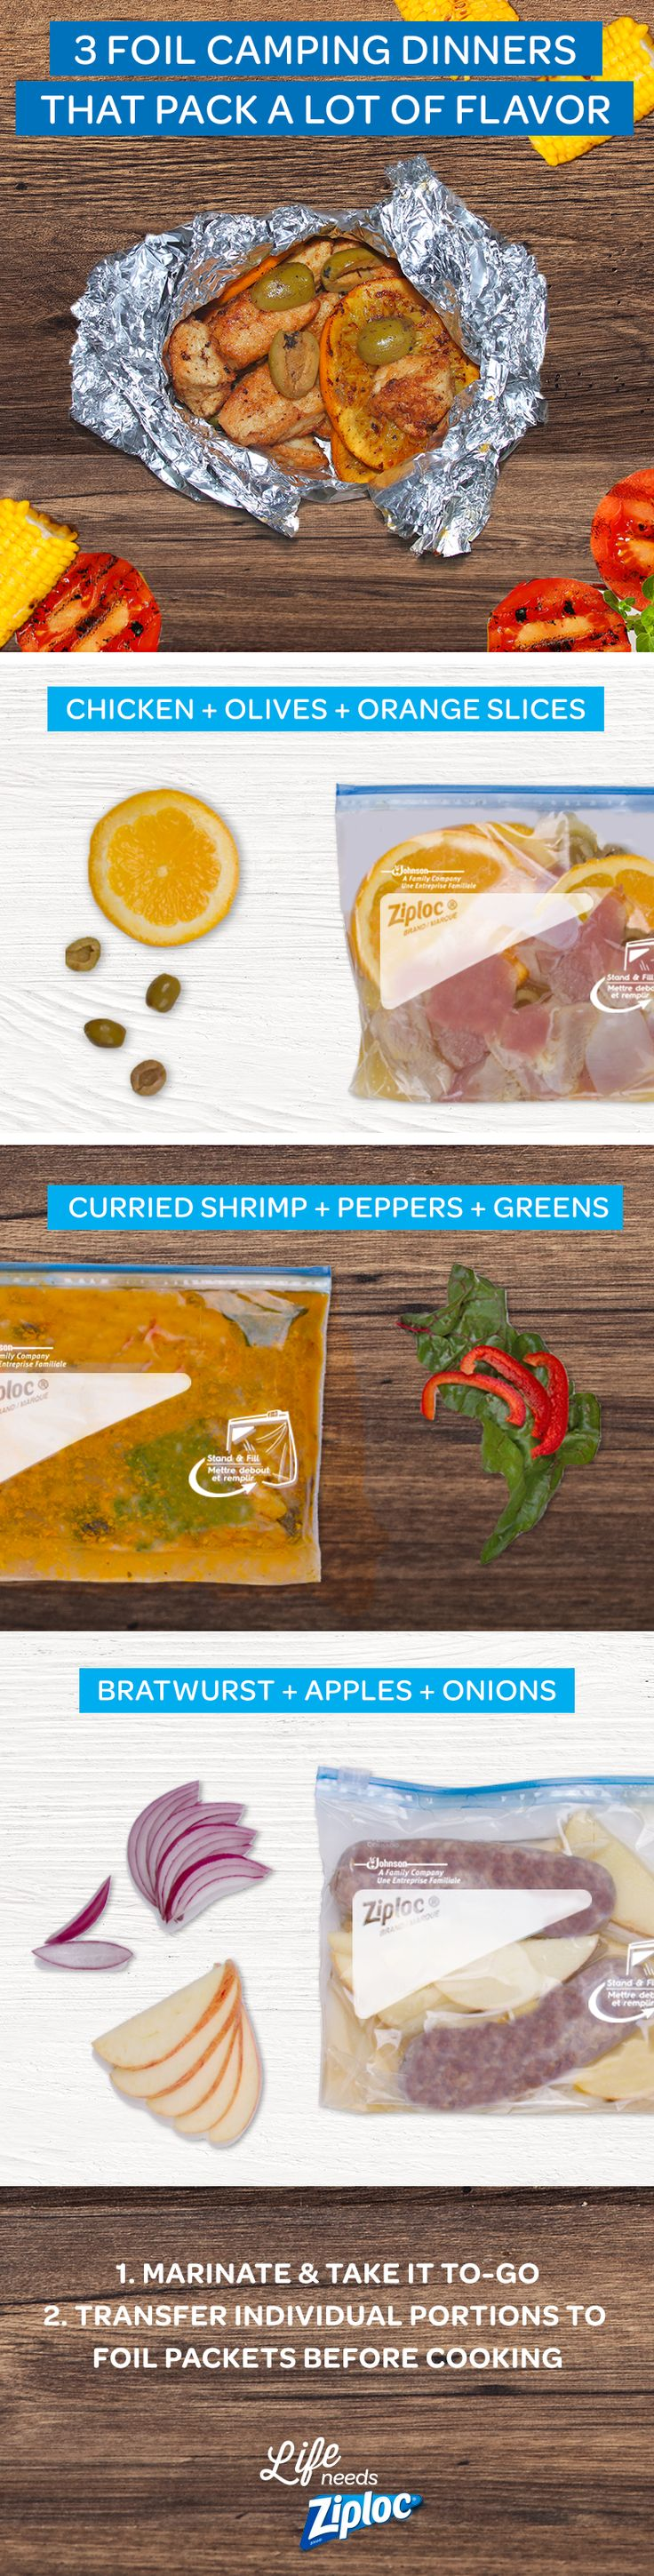 These easy foil packet meals are perfect for camping or cooking at home in the oven. Combine chicken, olives, orange slices and a splash of orange juice; shrimp, curry sauce, bell peppers and swiss chard or spinach; or bratwurst, apples, onions and a splash of apple cider vinegar. Make enough for dinner for one or for a whole family. Take these simple marinades to your campsite, picnic or cookout in a Ziploc® bag. These recipes are easy to customize or get your kids to help!